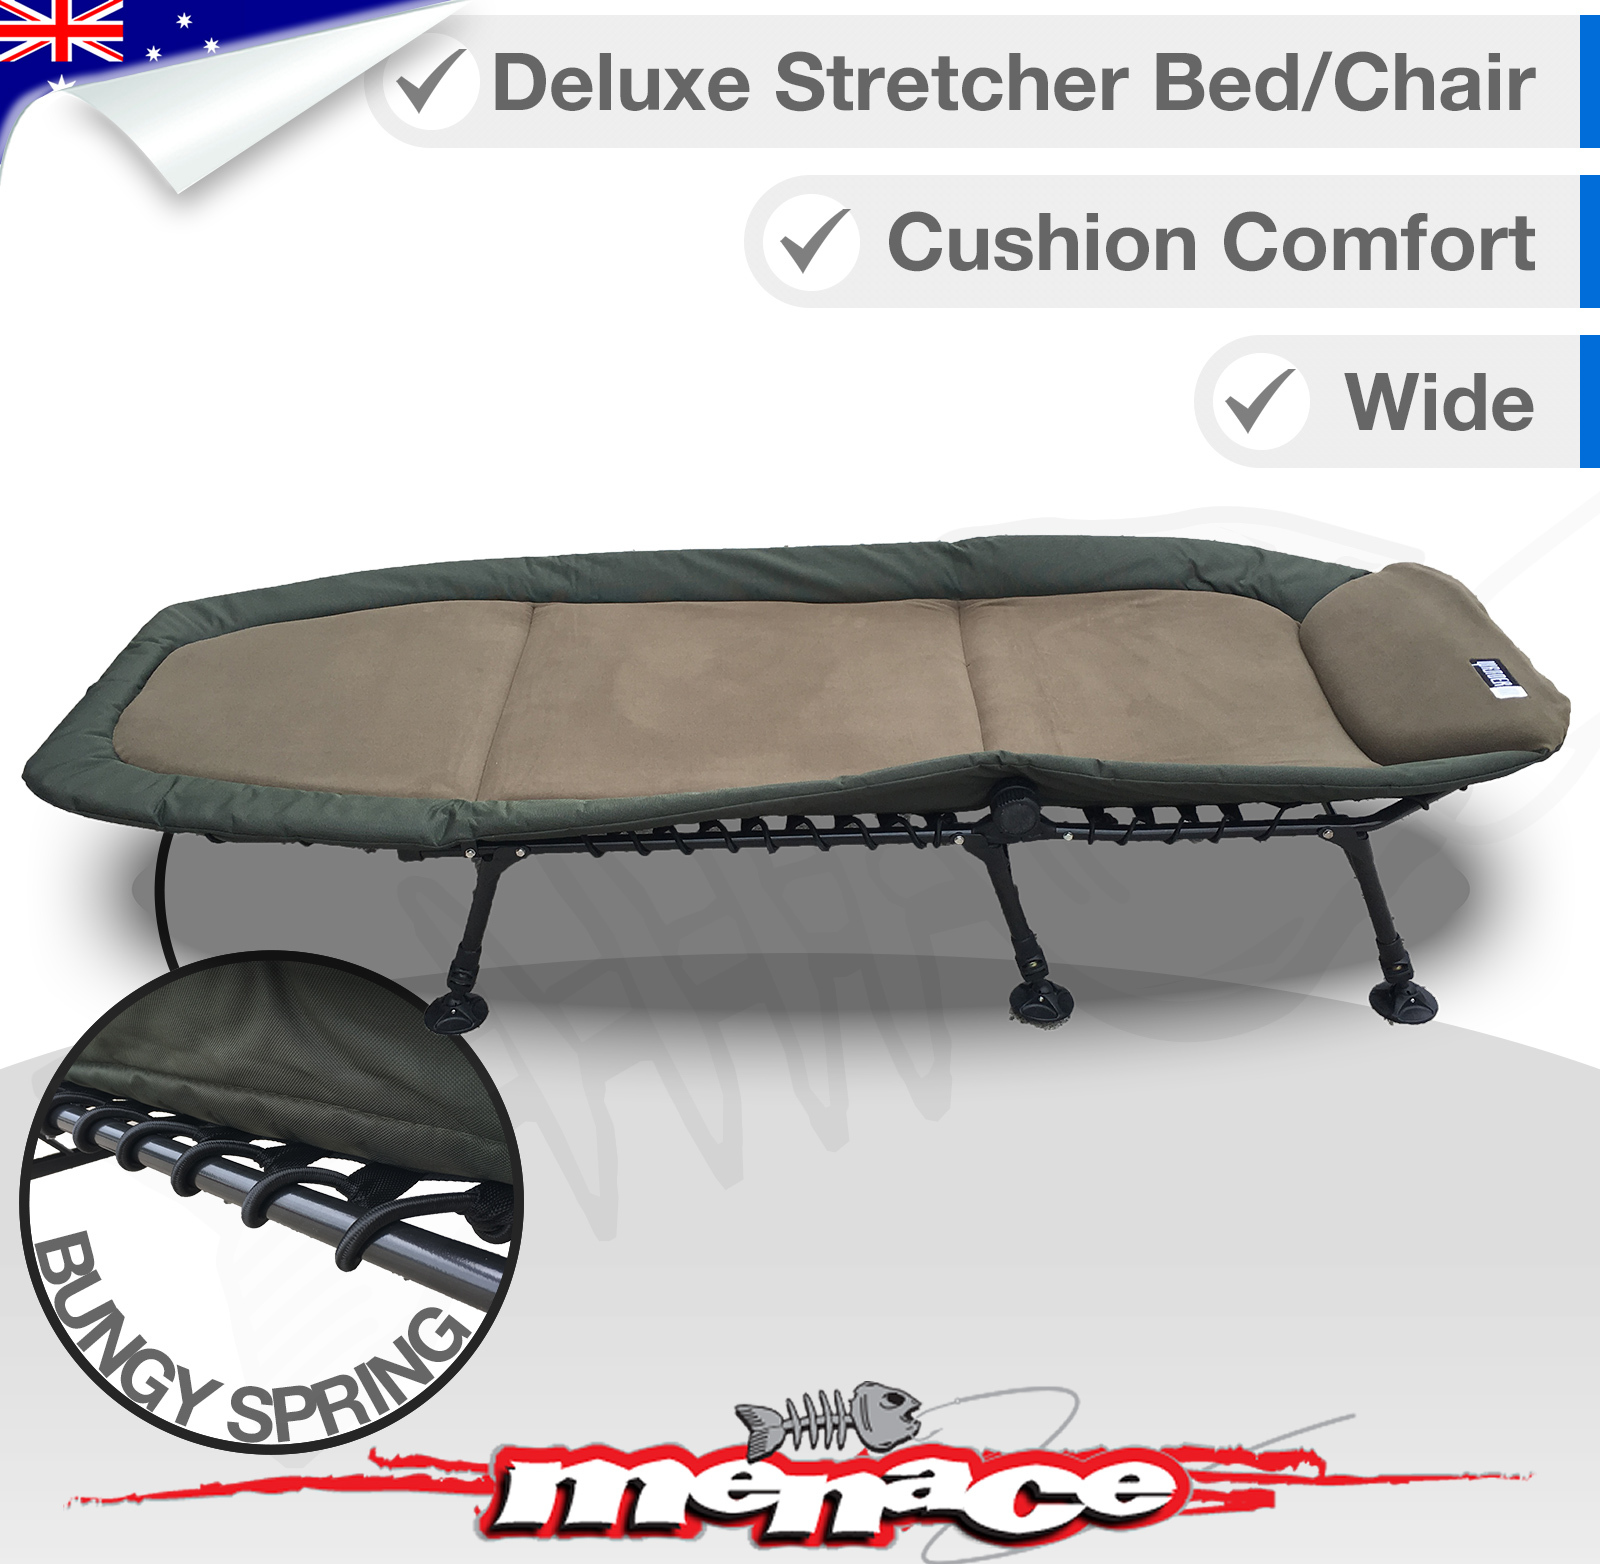 Folding Sleeping Chair Wander Oz Fold Out Stretcher Sleeping Bed Chair